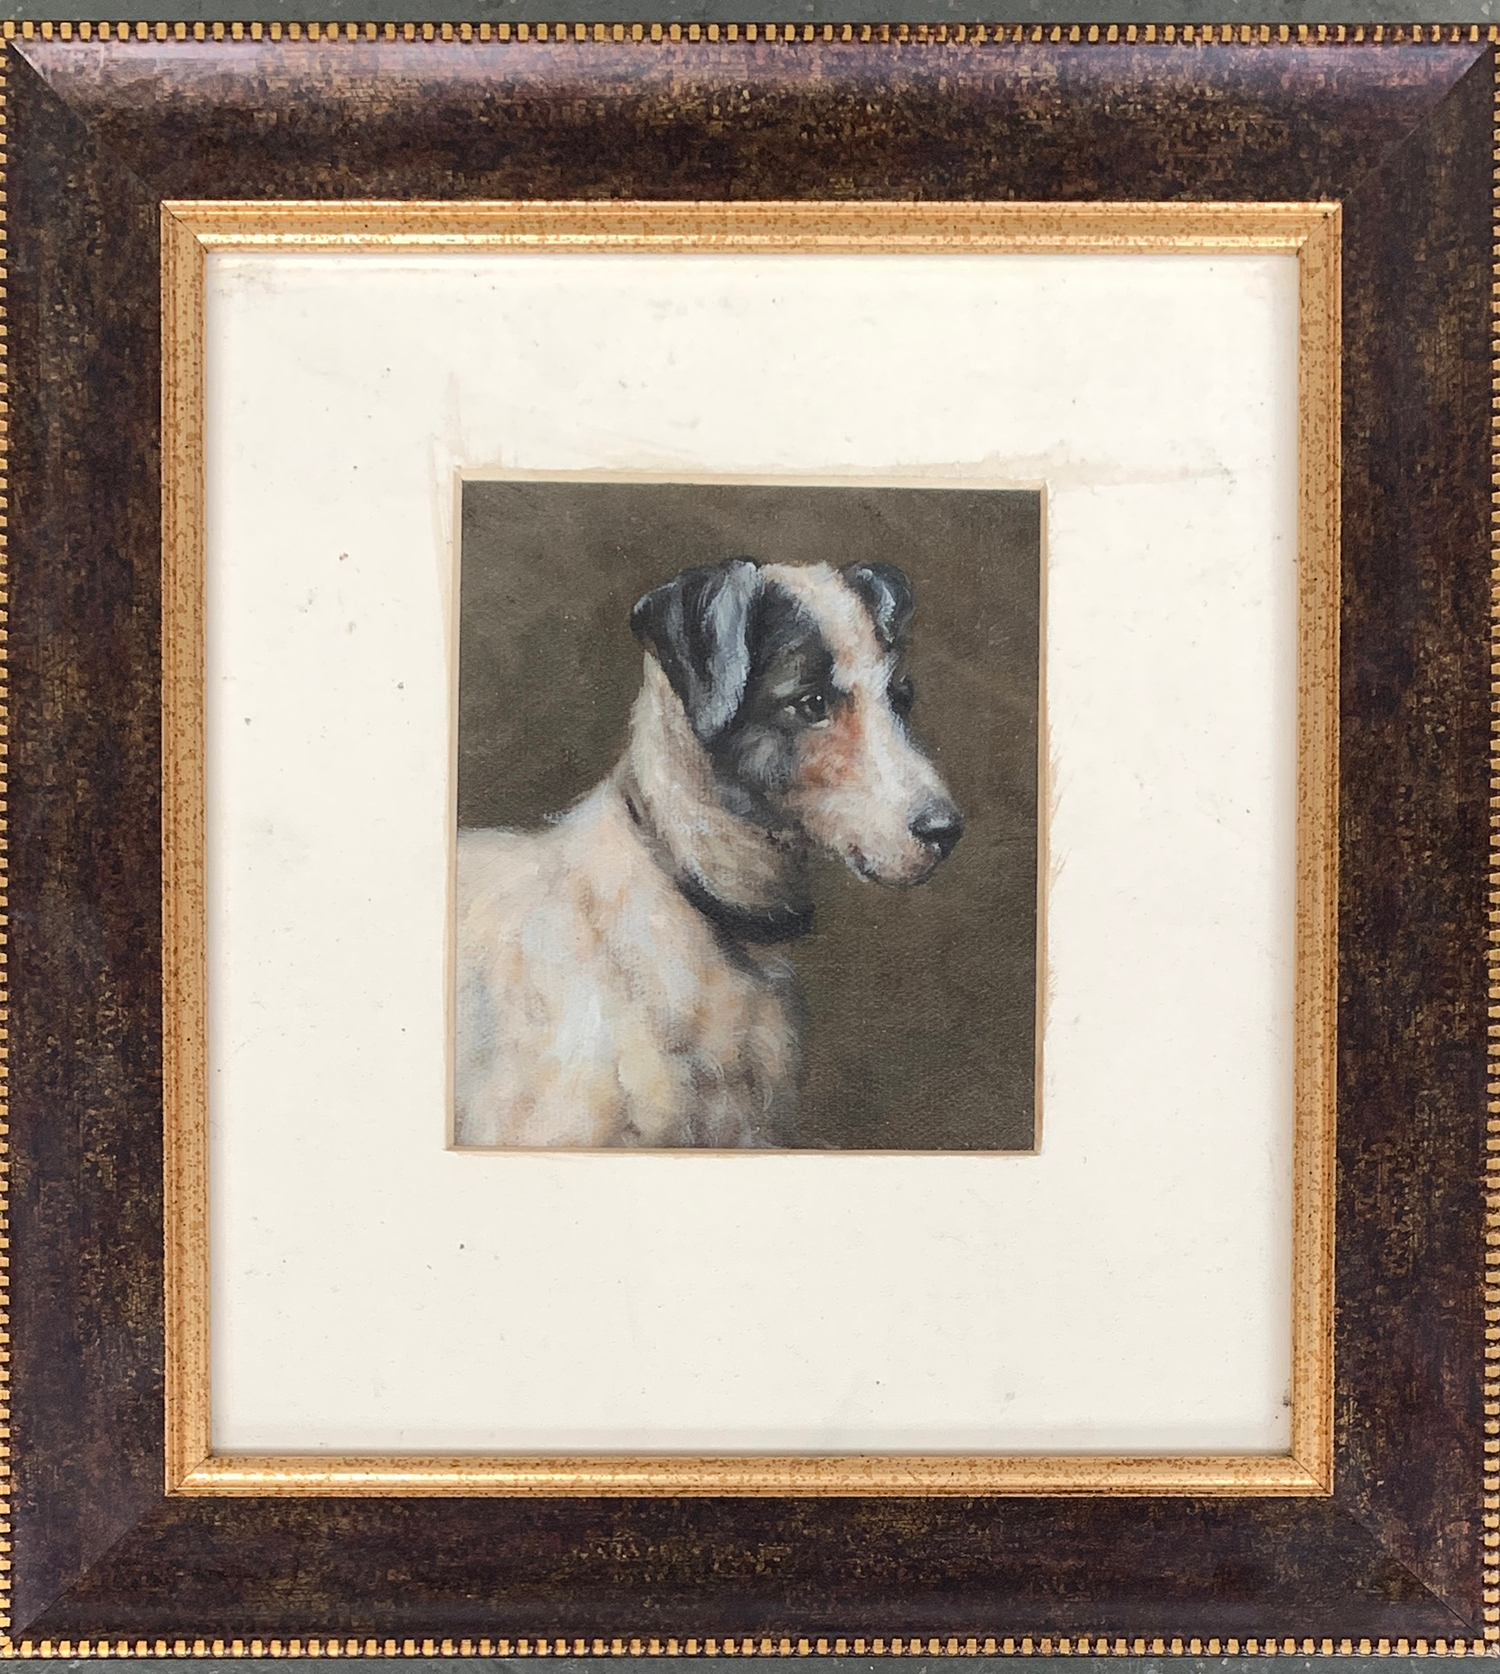 20th century British school, study of a jack russell terrier, oil on board, 15x13cm